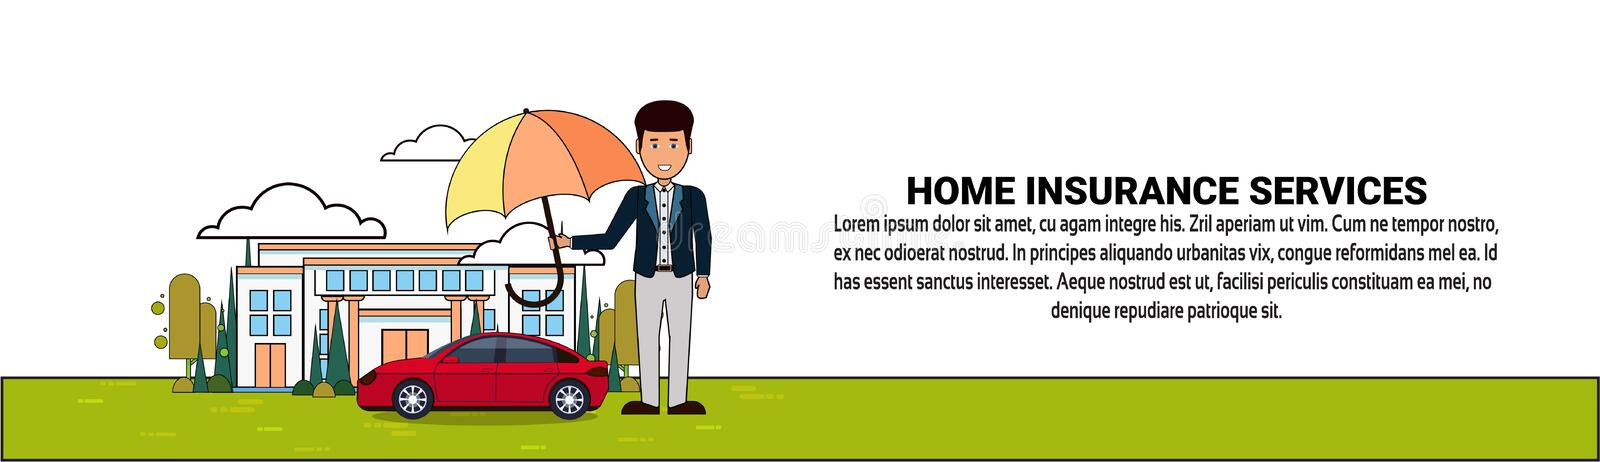 Home Insurance Services Banner With Man Holding Umbrella Over House And Car Property Protection And Safety. Vector Illustration stock illustration